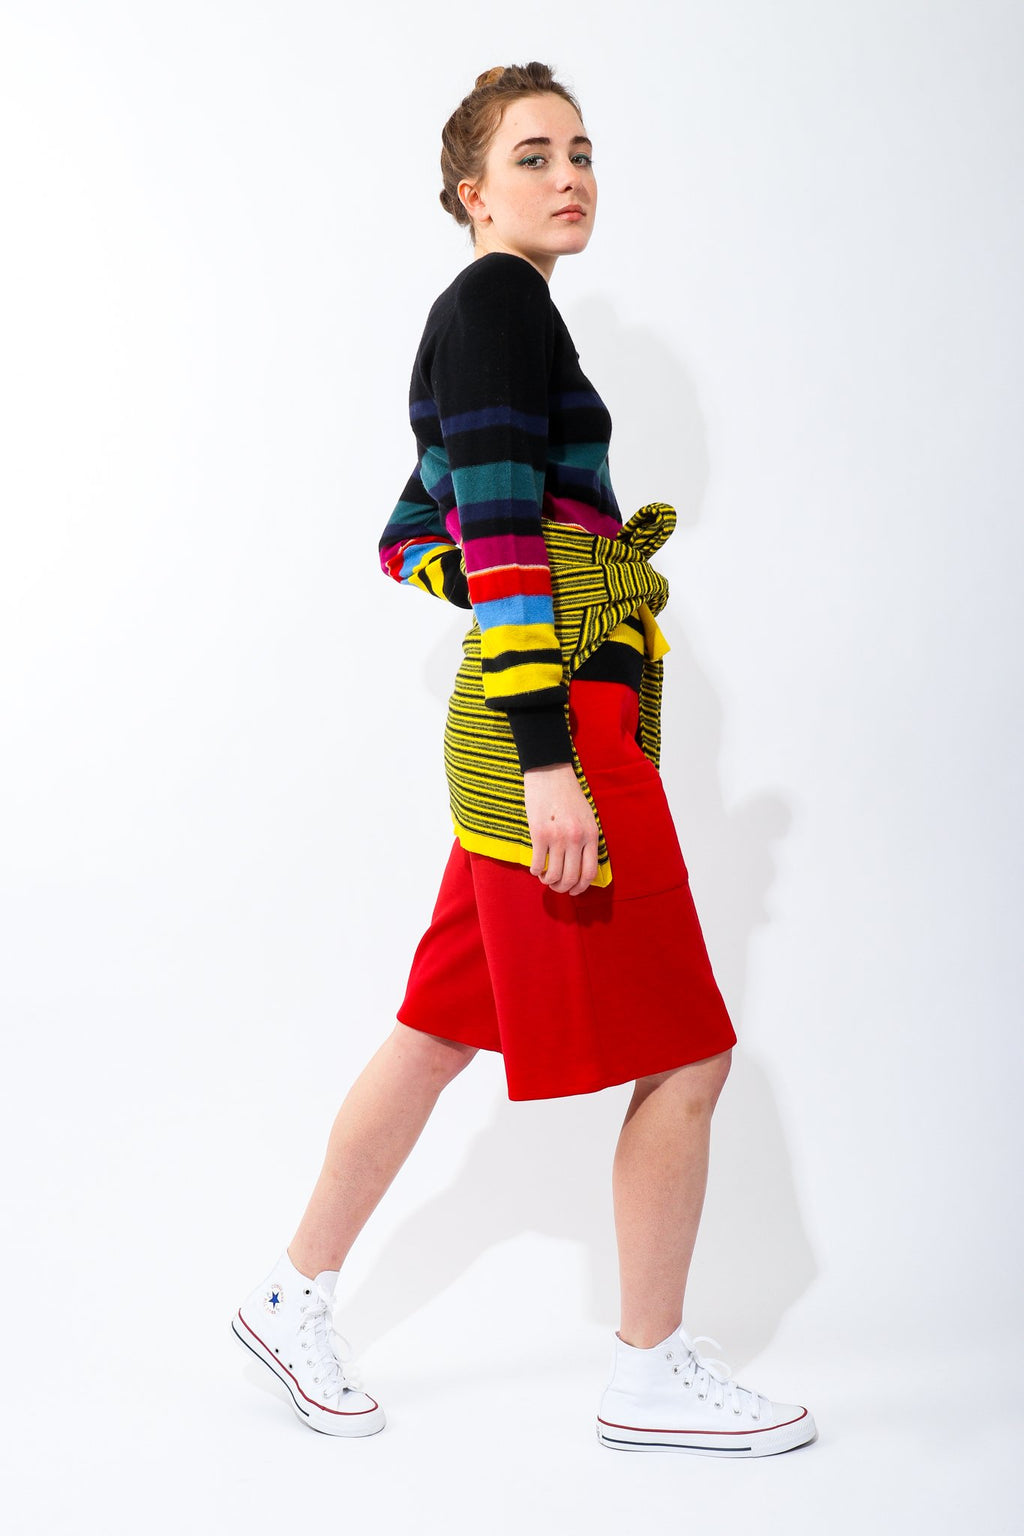 Girl Wearing Vintage Sonia Rykiel Red Knit Bermuda Walking Shorts and striped sweater with converse